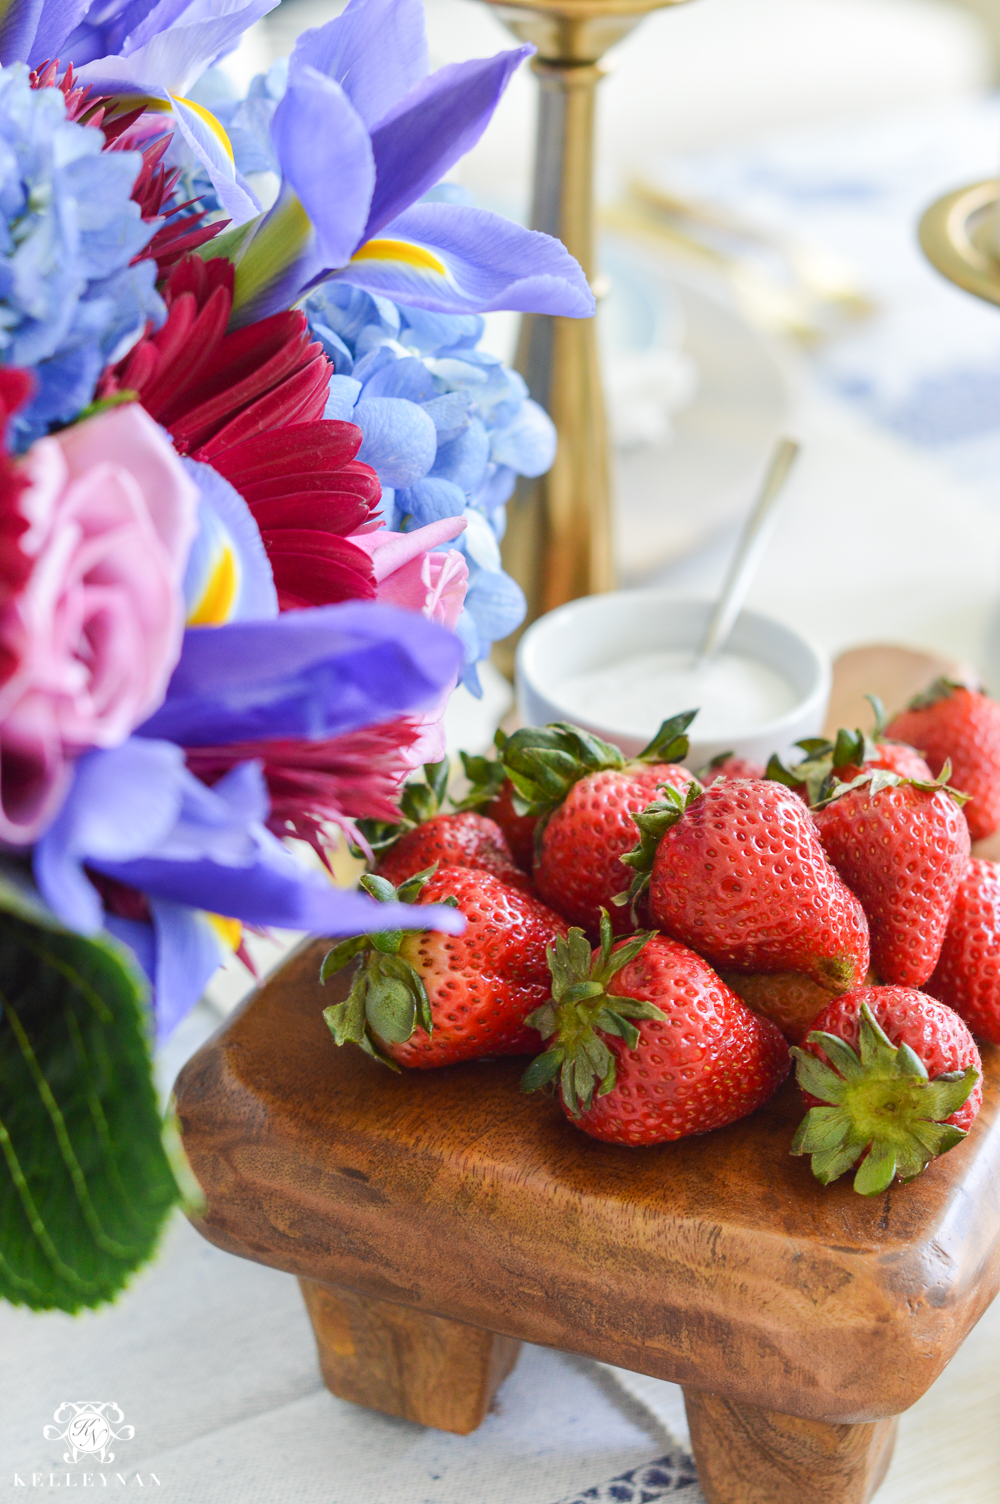 Jewel Tone and Blue and White Table with Strawberries and Sugar